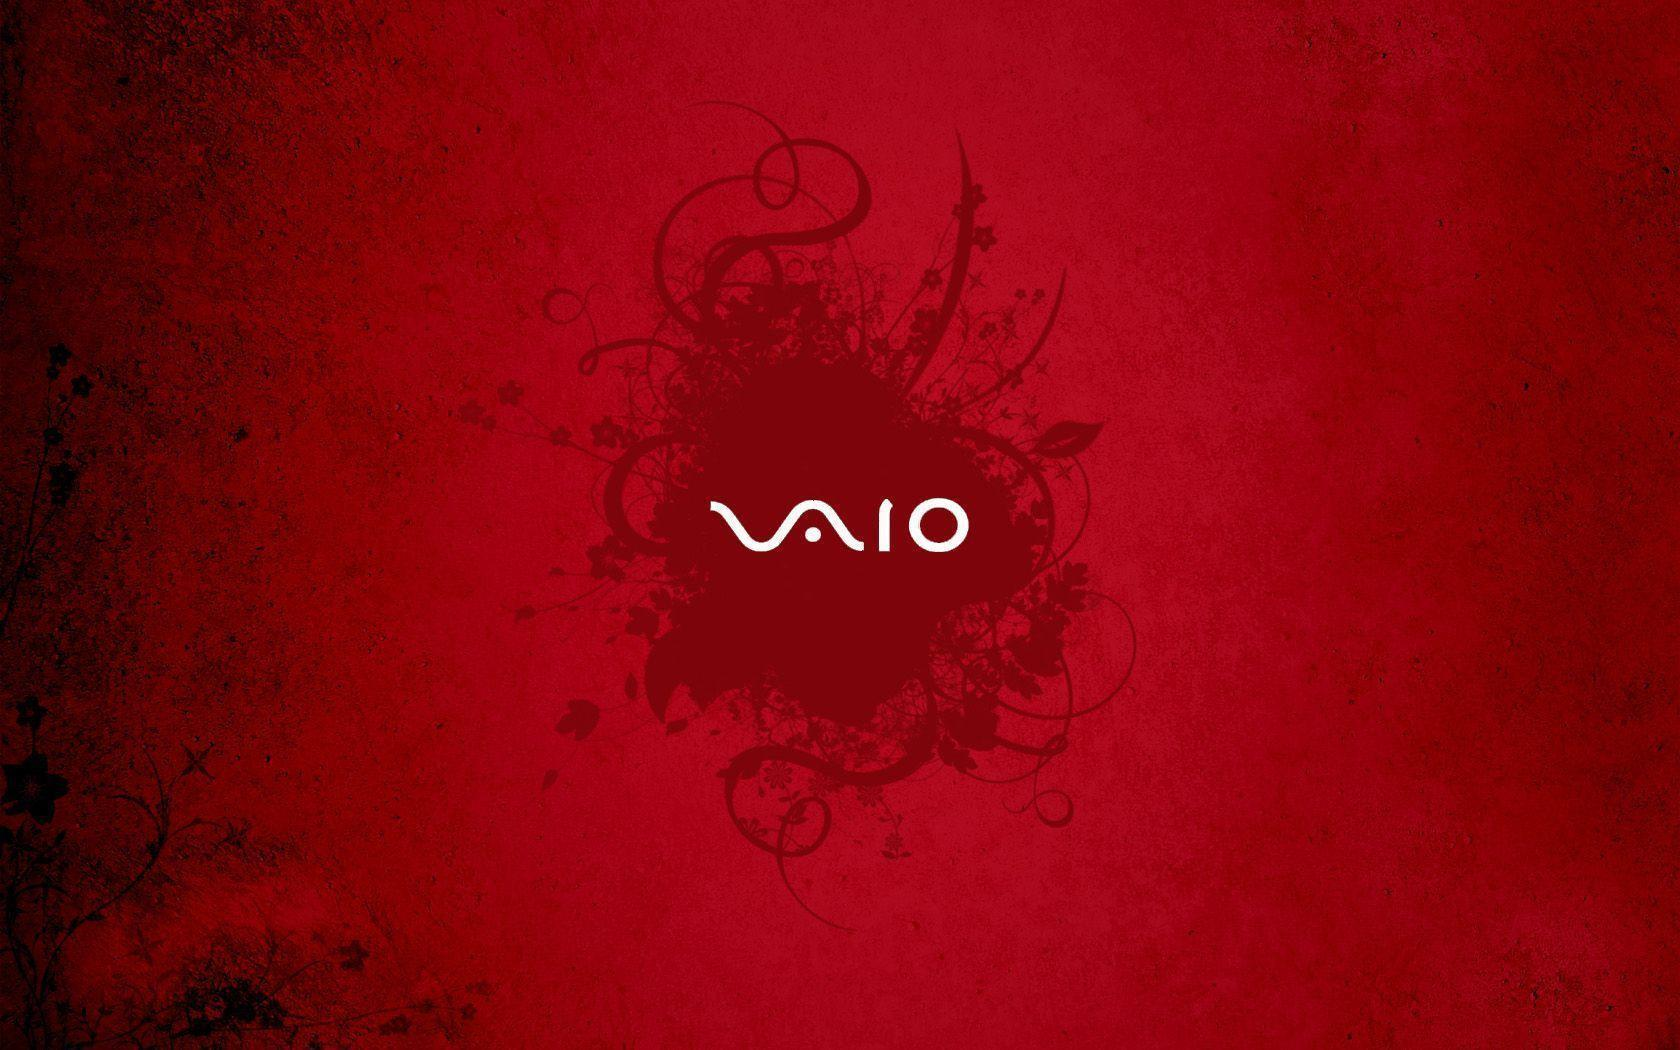 Sony Vaio Wallpapers   Wallpaper Cave. Laptops Vaio Wallpapers 2017   Wallpaper Cave